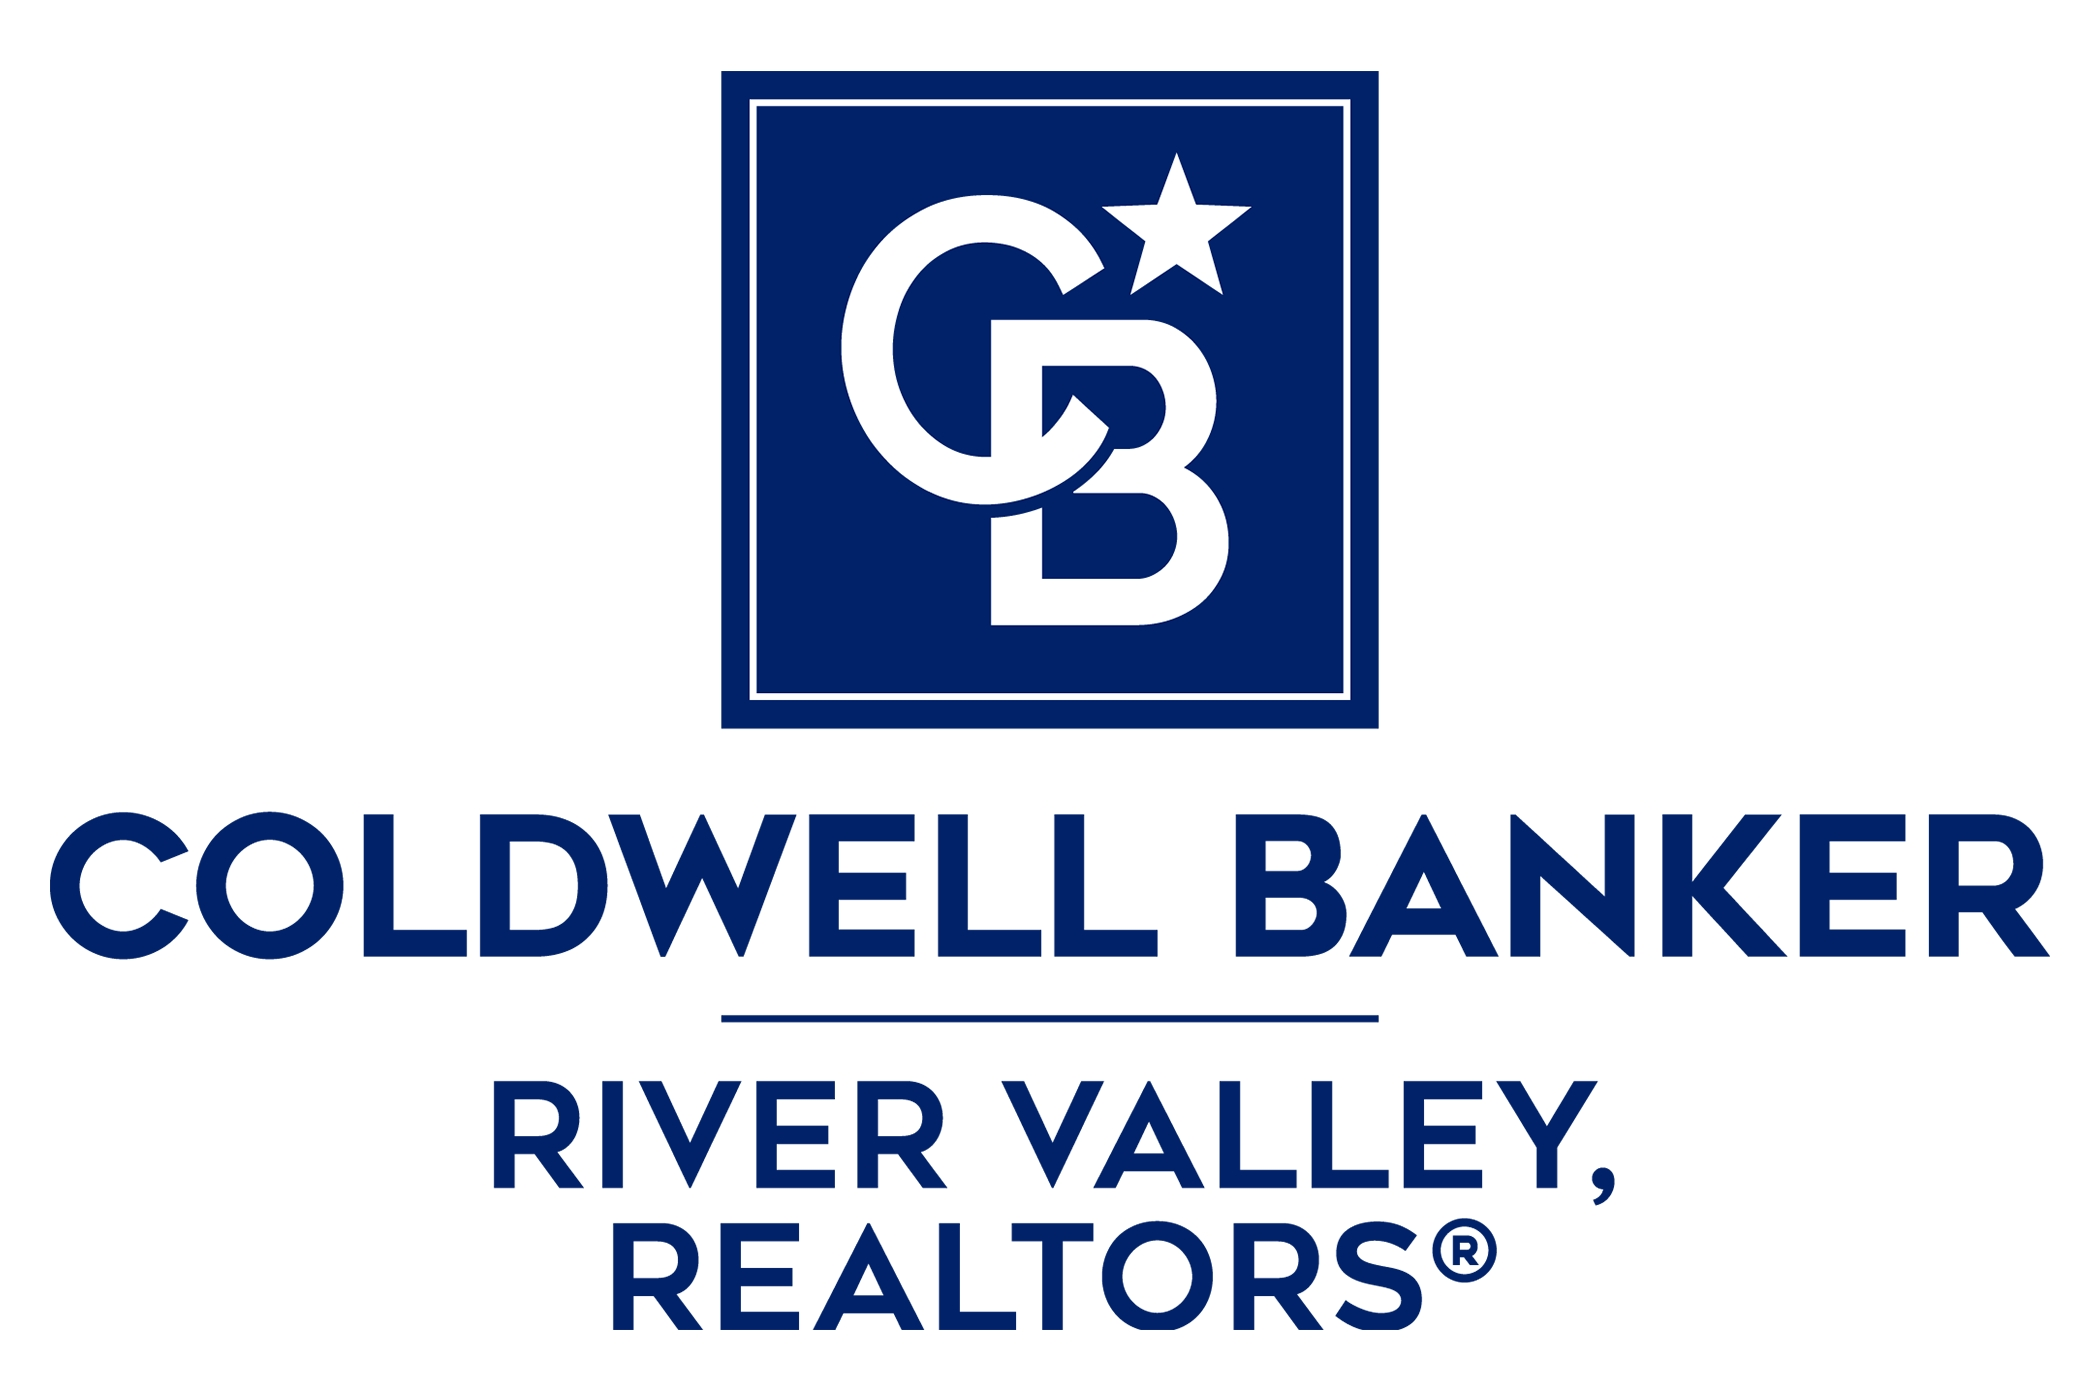 Bill Perrotti - Coldwell Banker River Valley Realtors